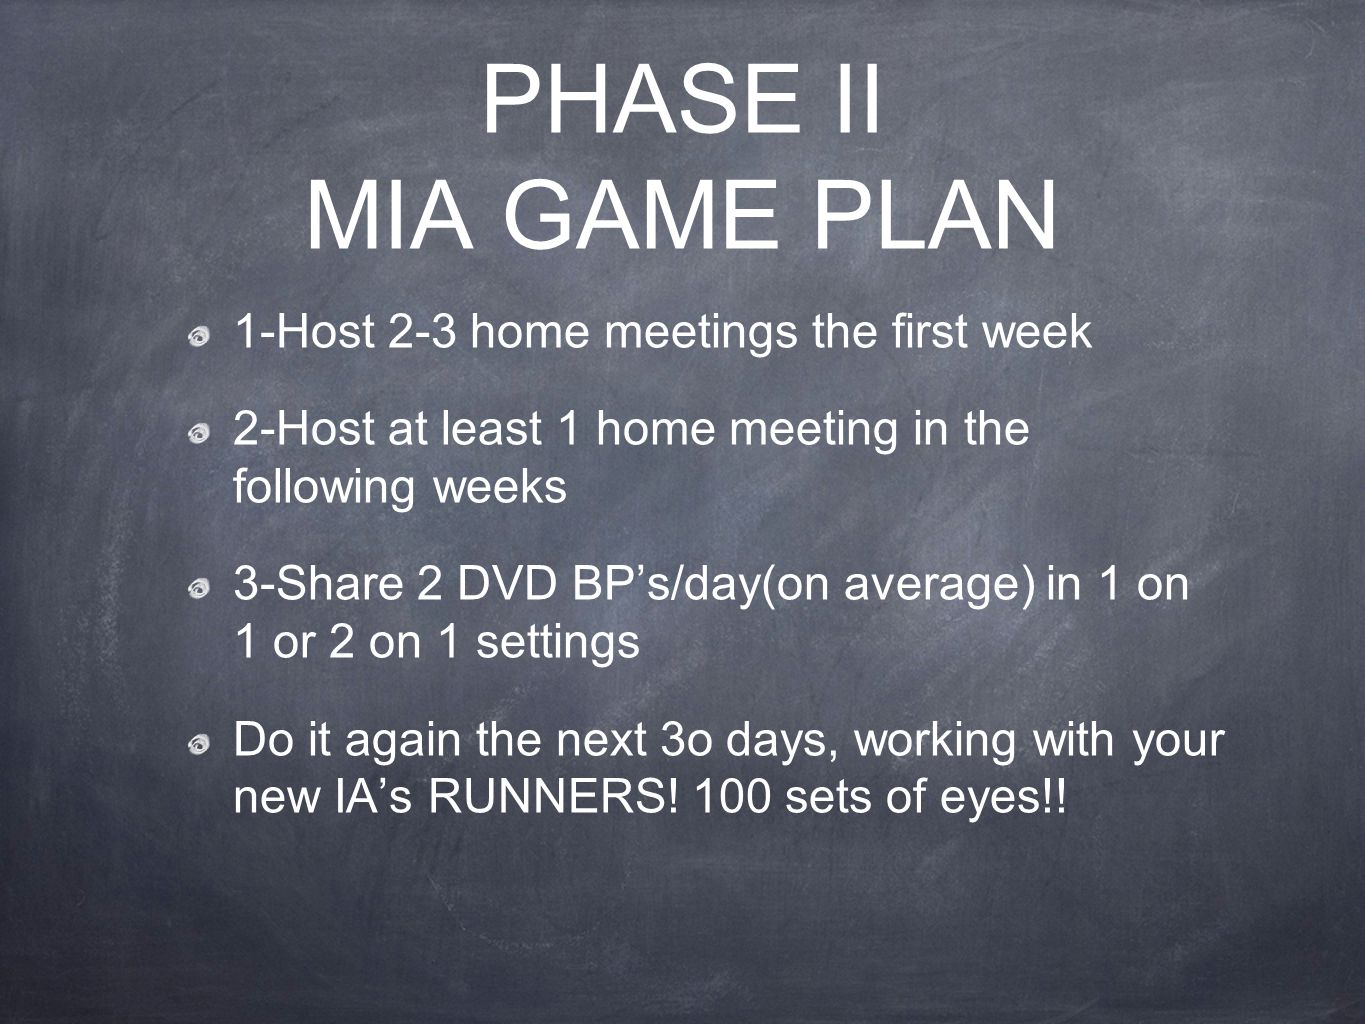 PHASE II MIA GAME PLAN 1-Host 2-3 home meetings the first week 2-Host at least 1 home meeting in the following weeks 3-Share 2 DVD BP's/day(on average) in 1 on 1 or 2 on 1 settings Do it again the next 3o days, working with your new IA's RUNNERS.